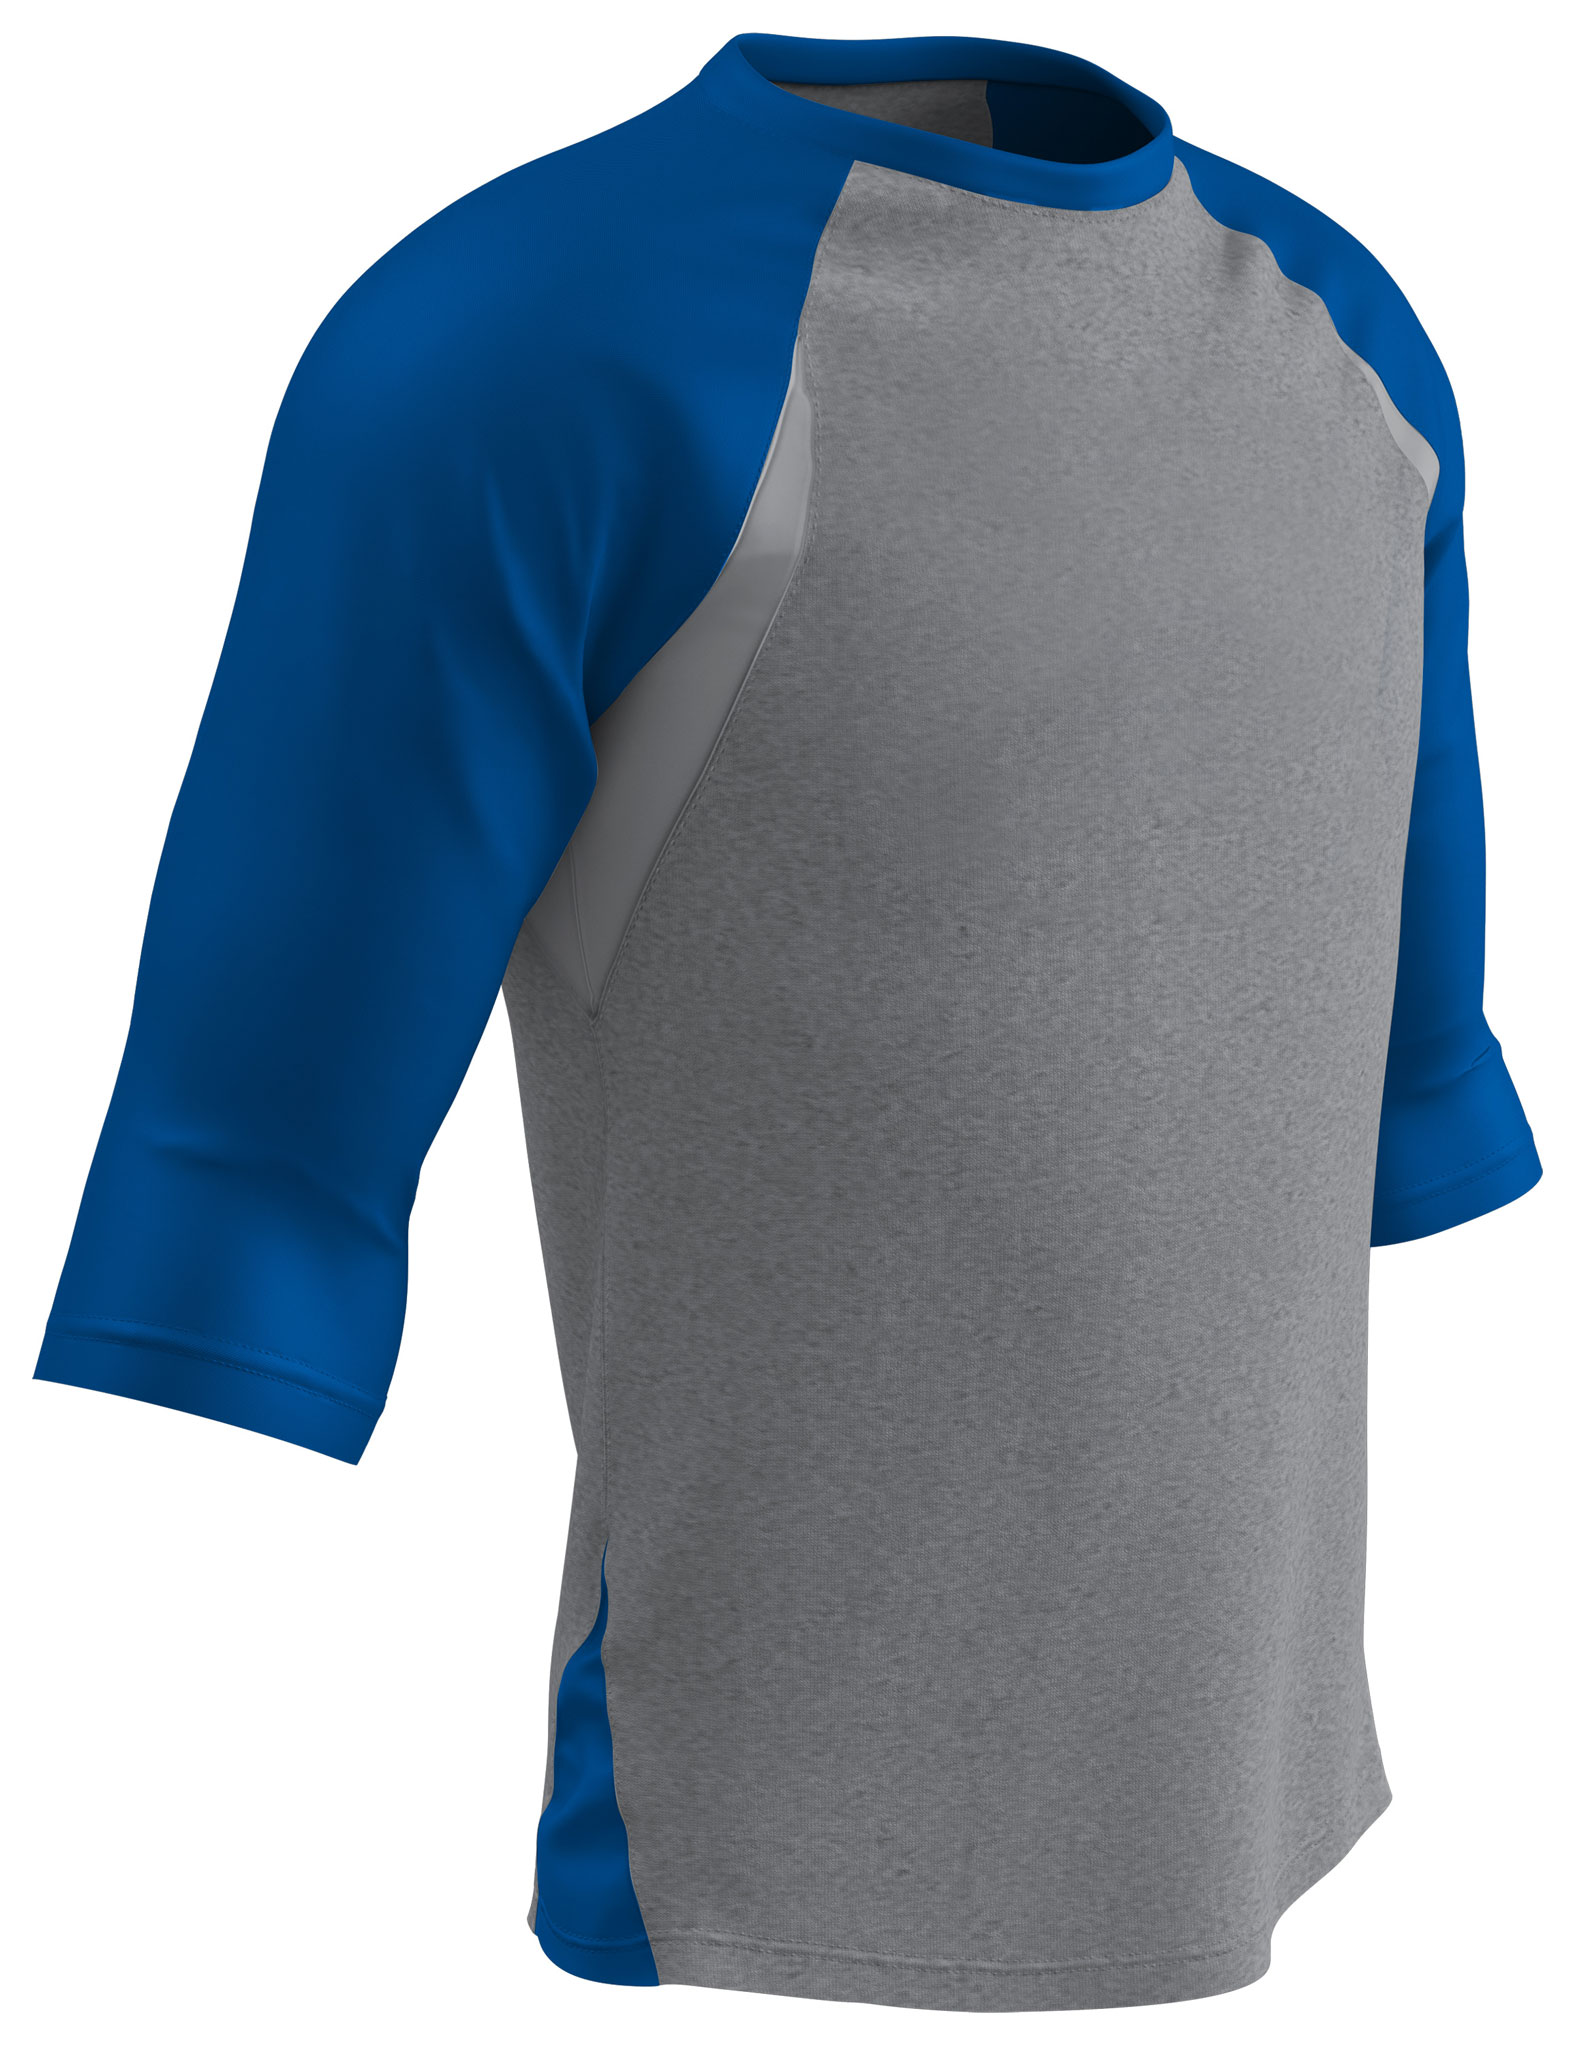 Youth Extra Innings 3/4 Sleeve Baseball Shirt